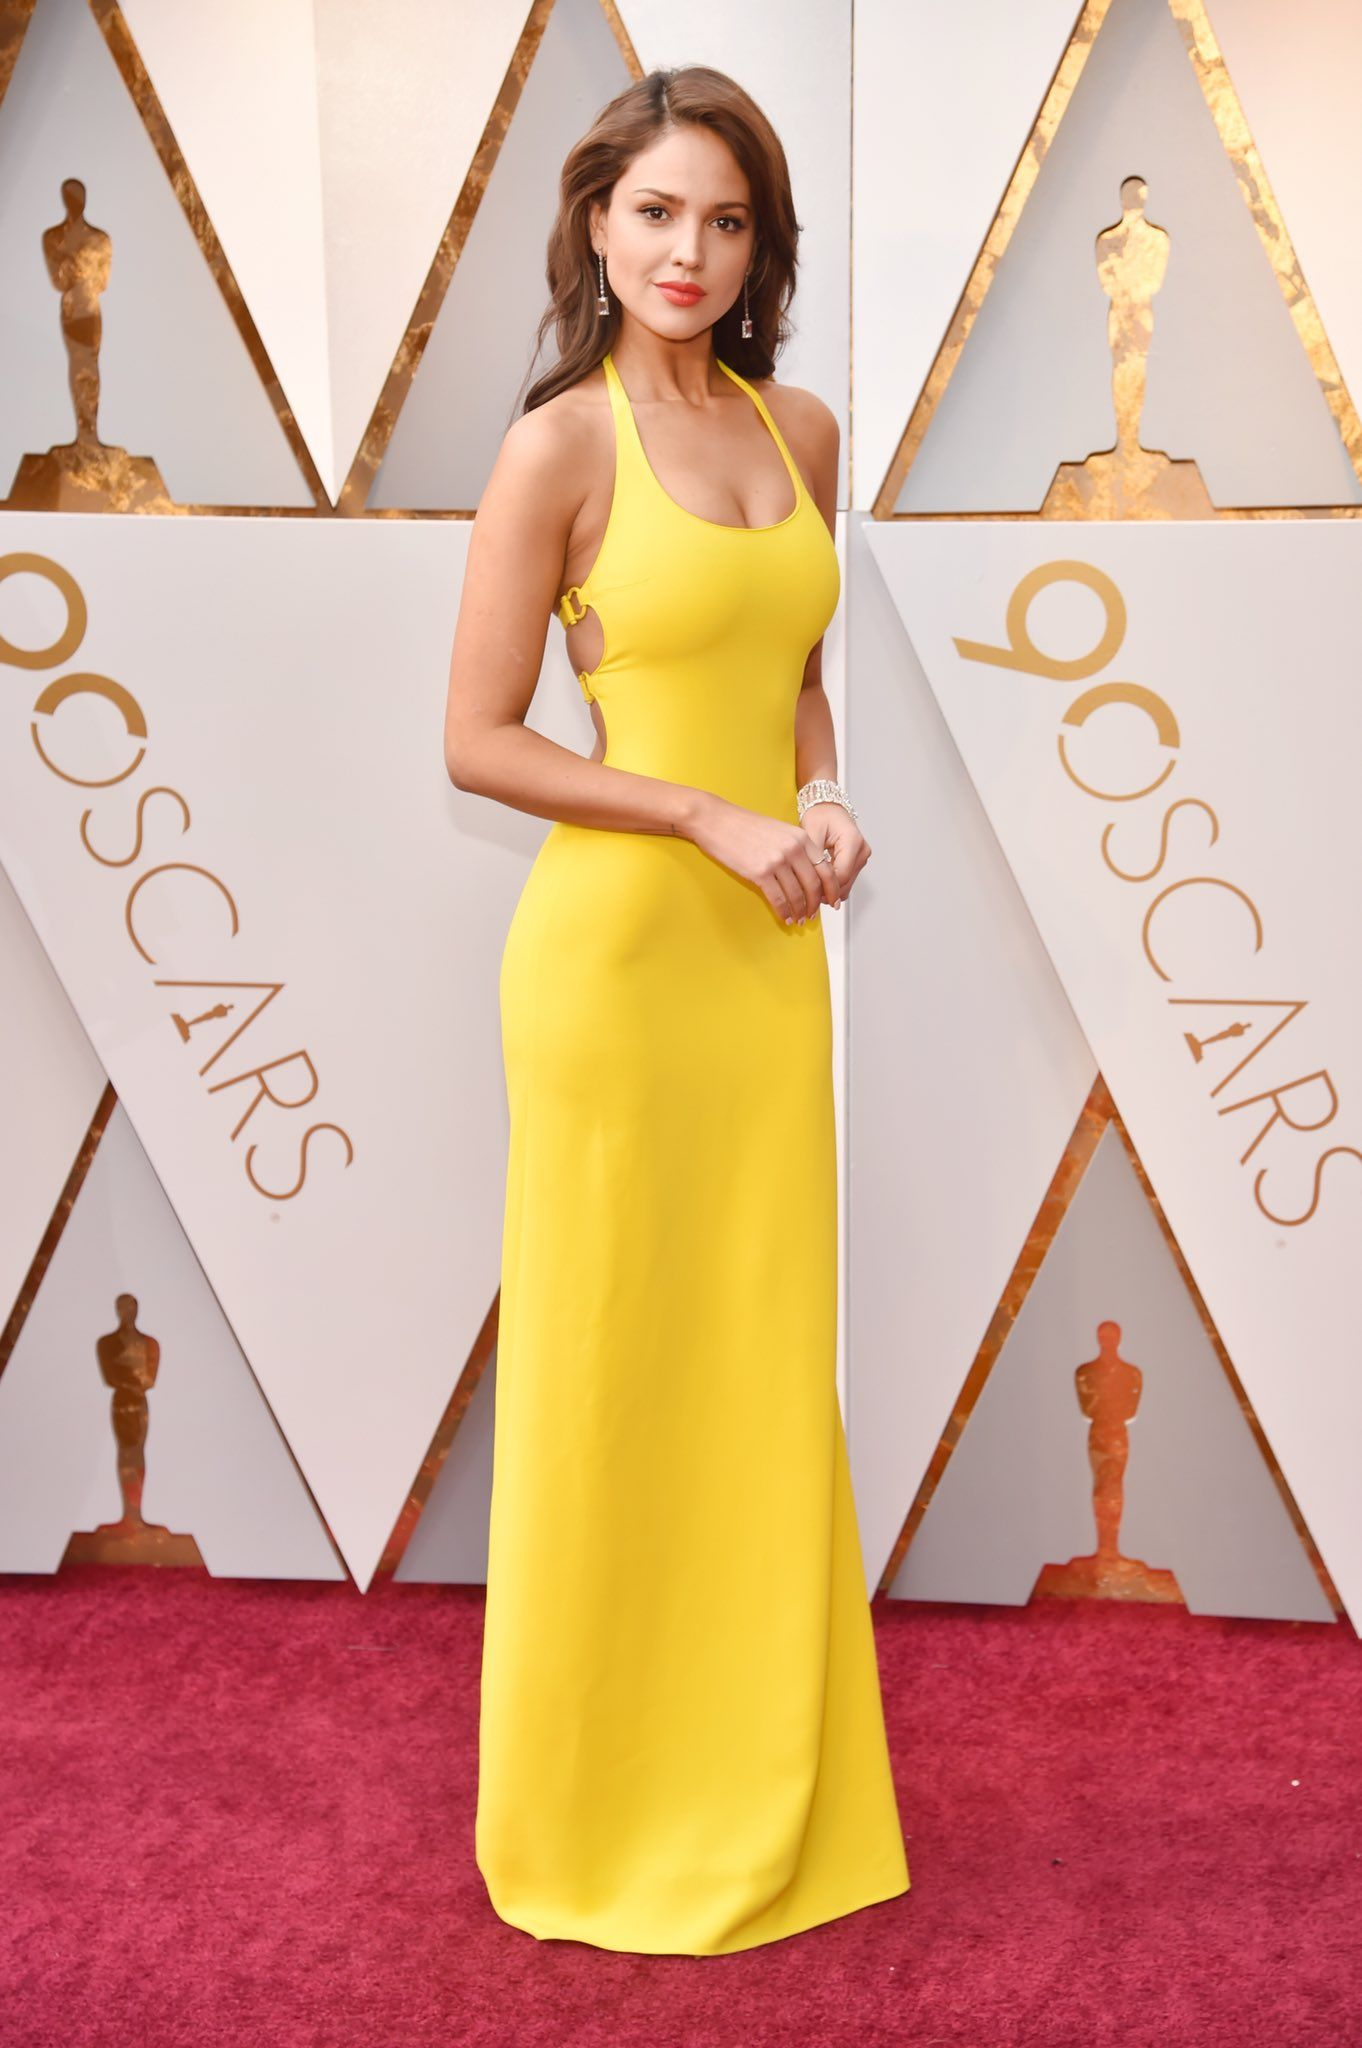 98caf3c015 Eiza Gonzalez arrives on the  Oscars red carpet wearing a Ralph Lauren  Collection gown.